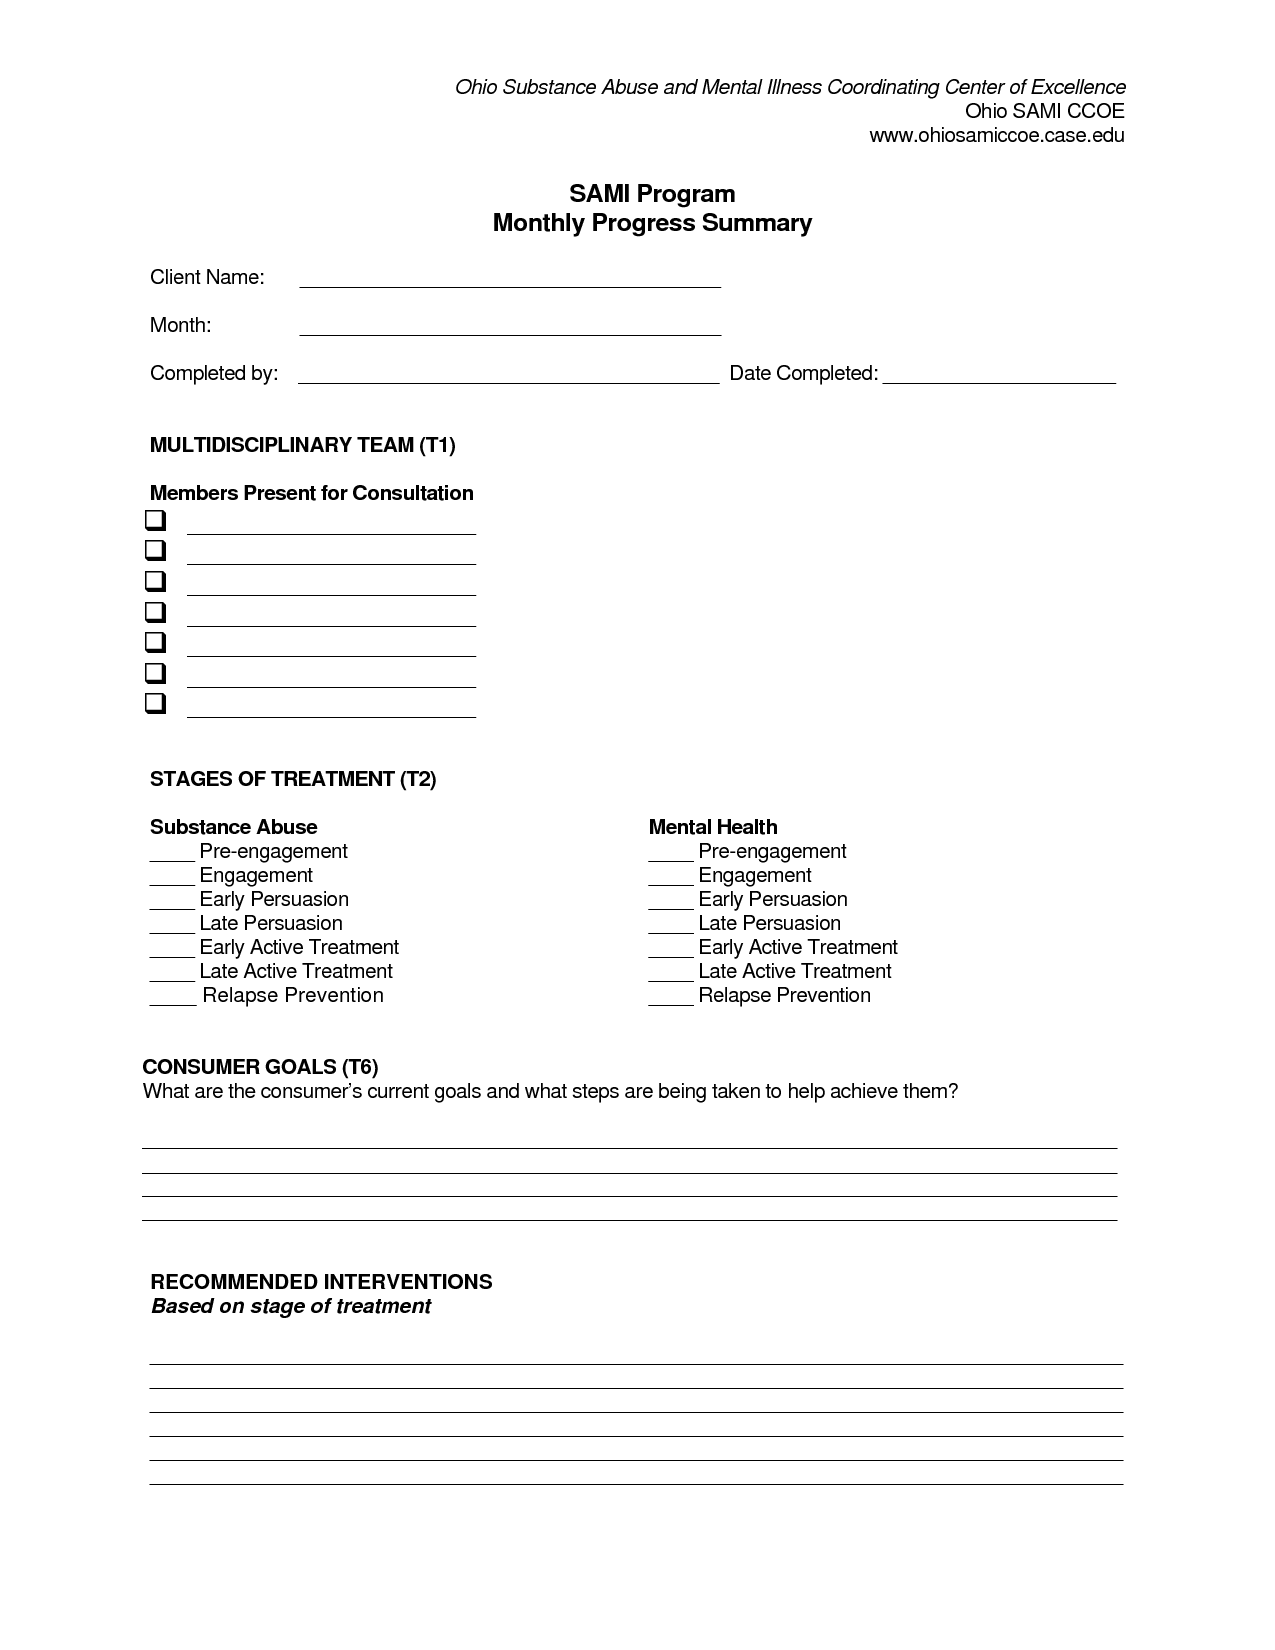 Safety Plan Worksheet For Addiction